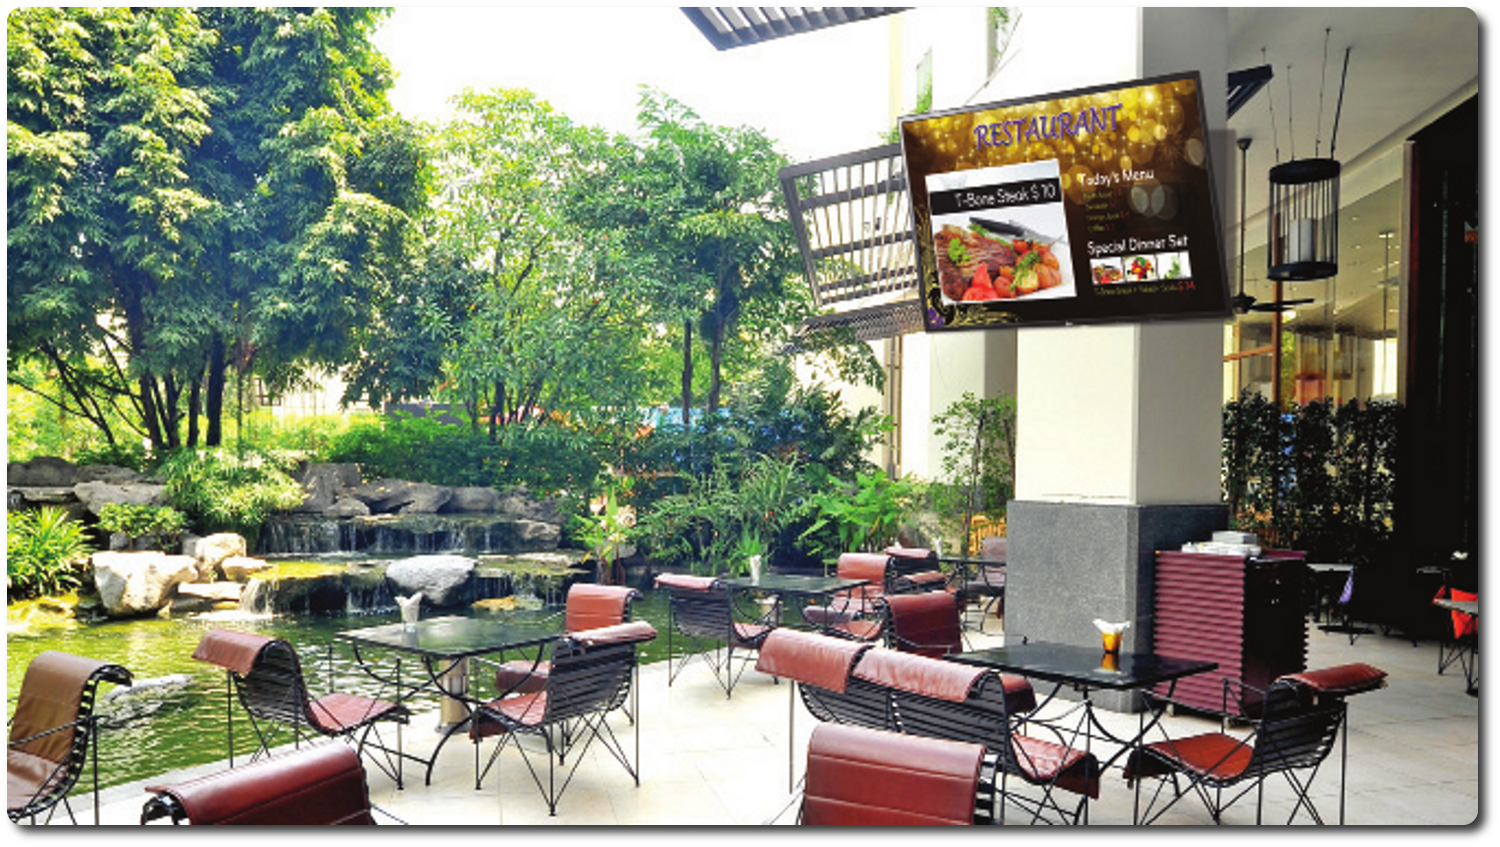 Outdoor Digital Signage   Can provide a wealth of information that can be easily updated.